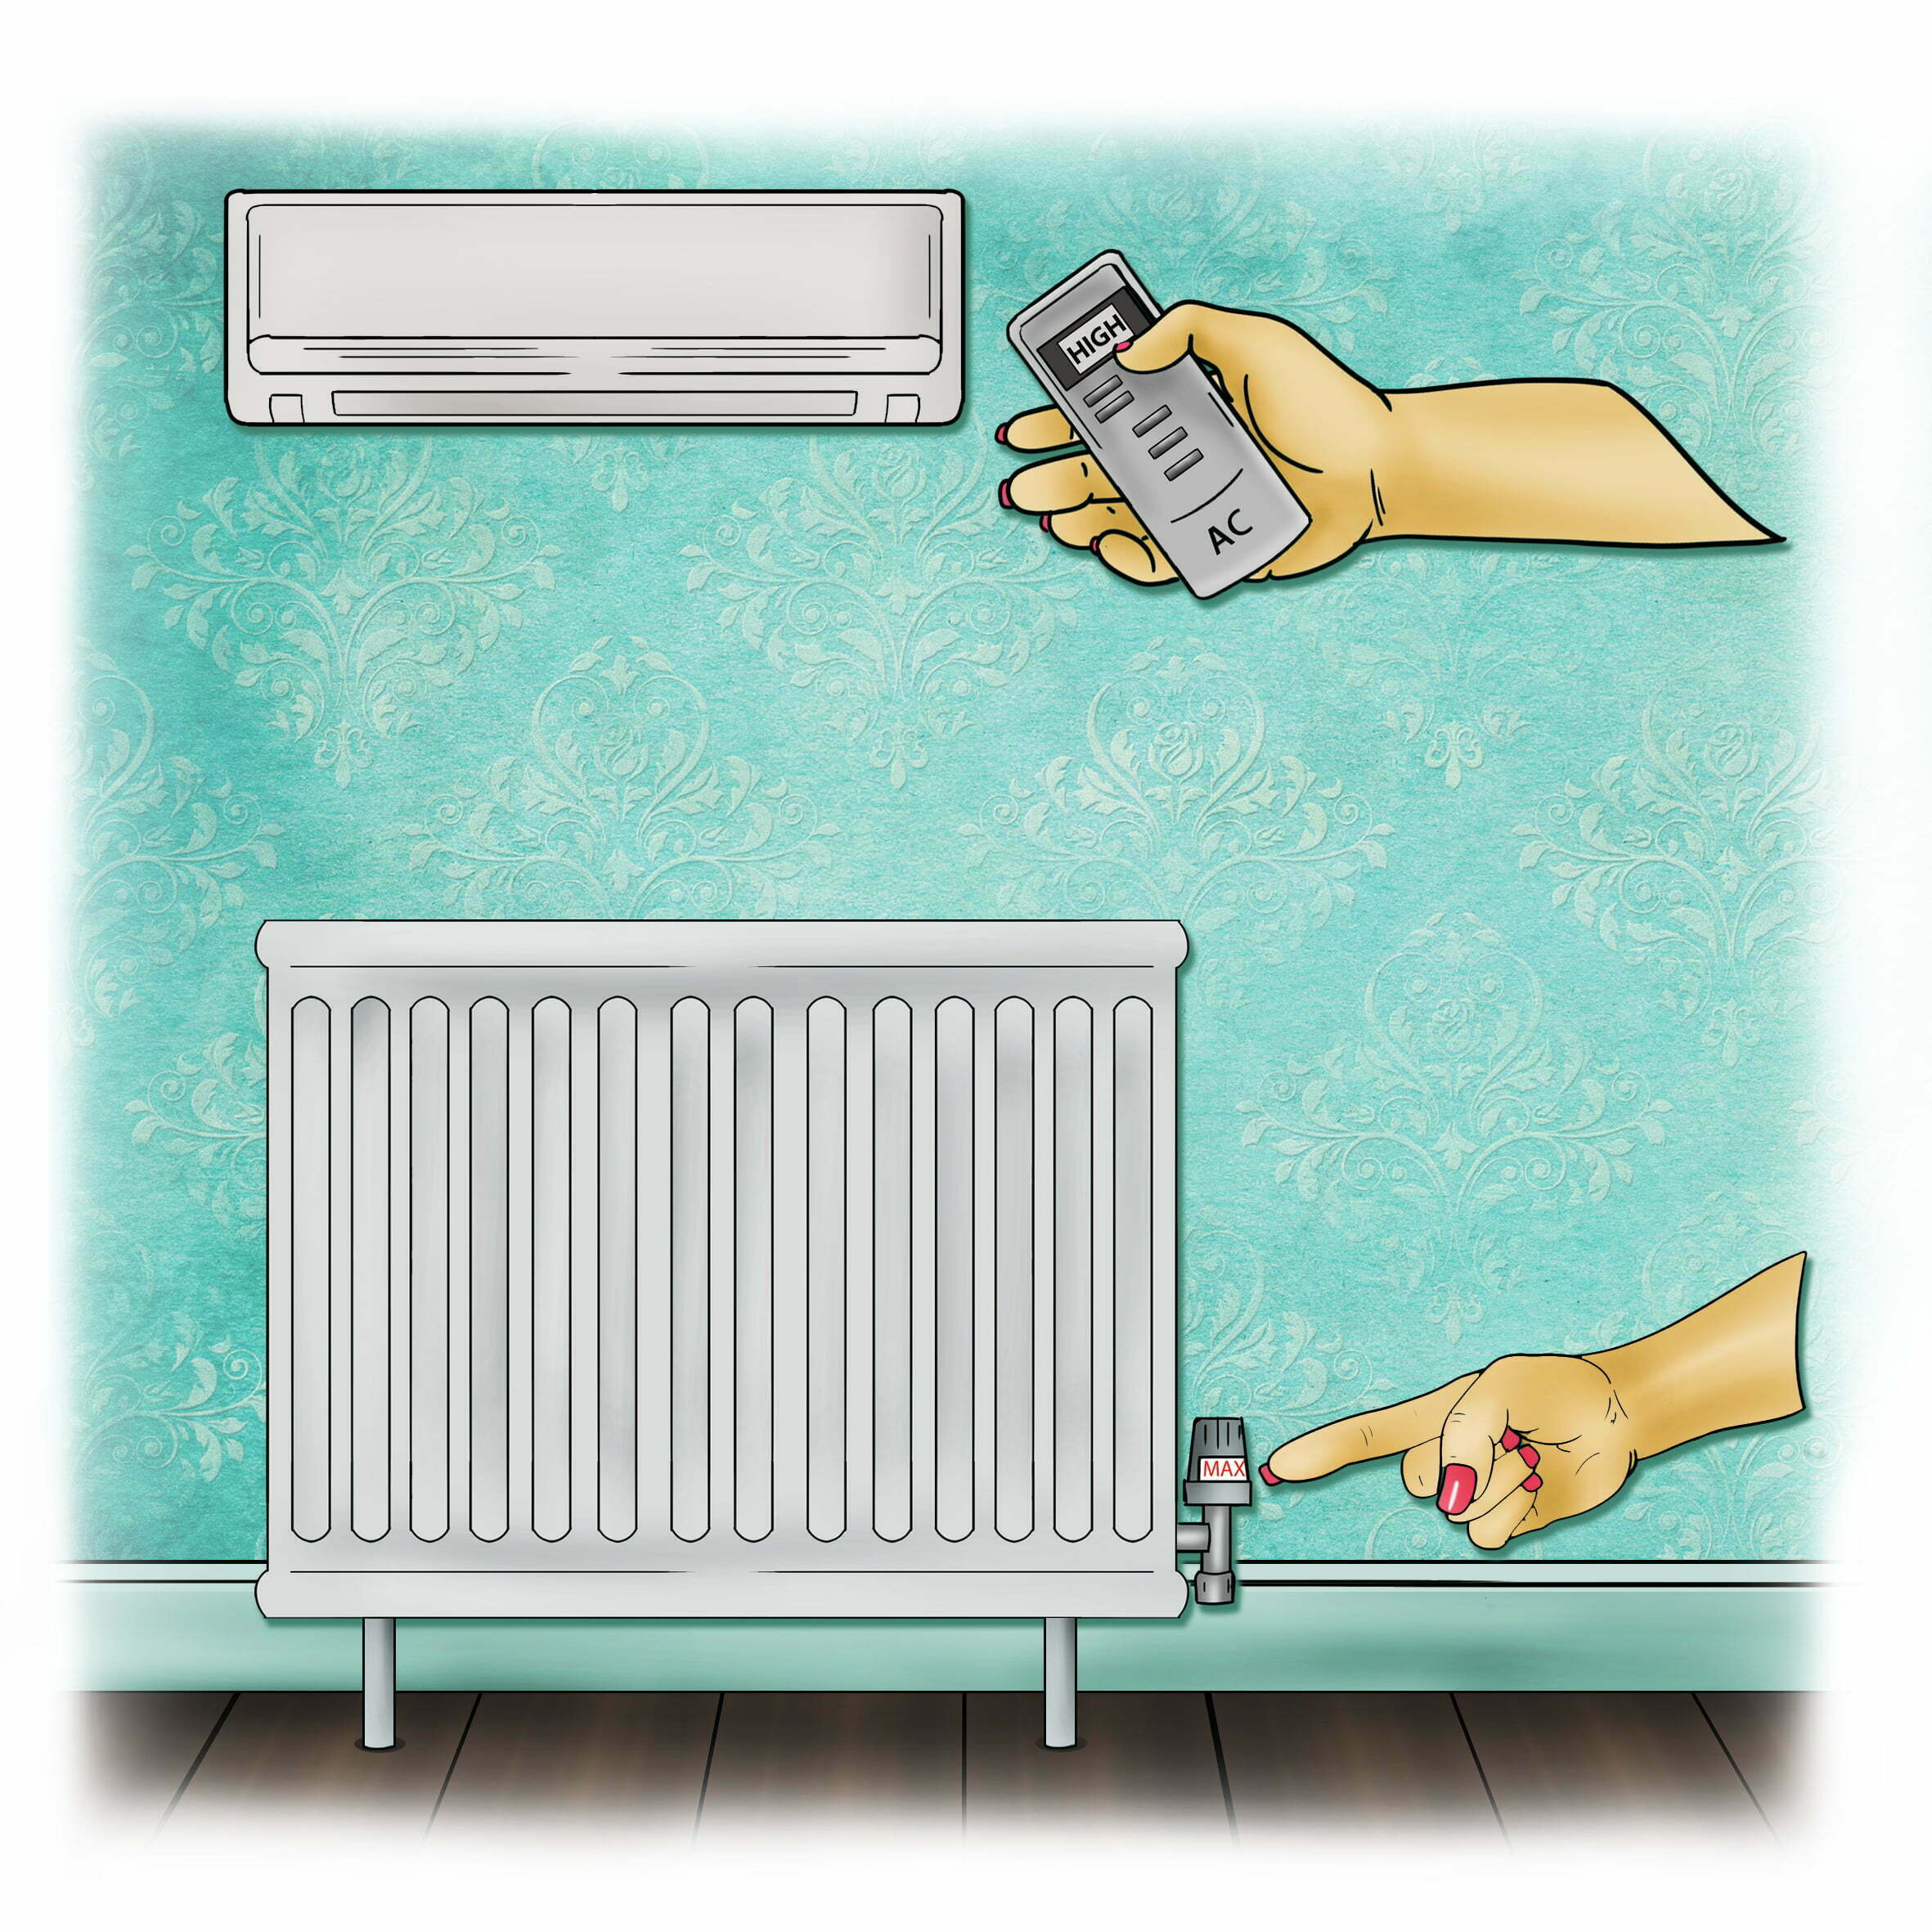 Turn up the heating and any air con unit you might have